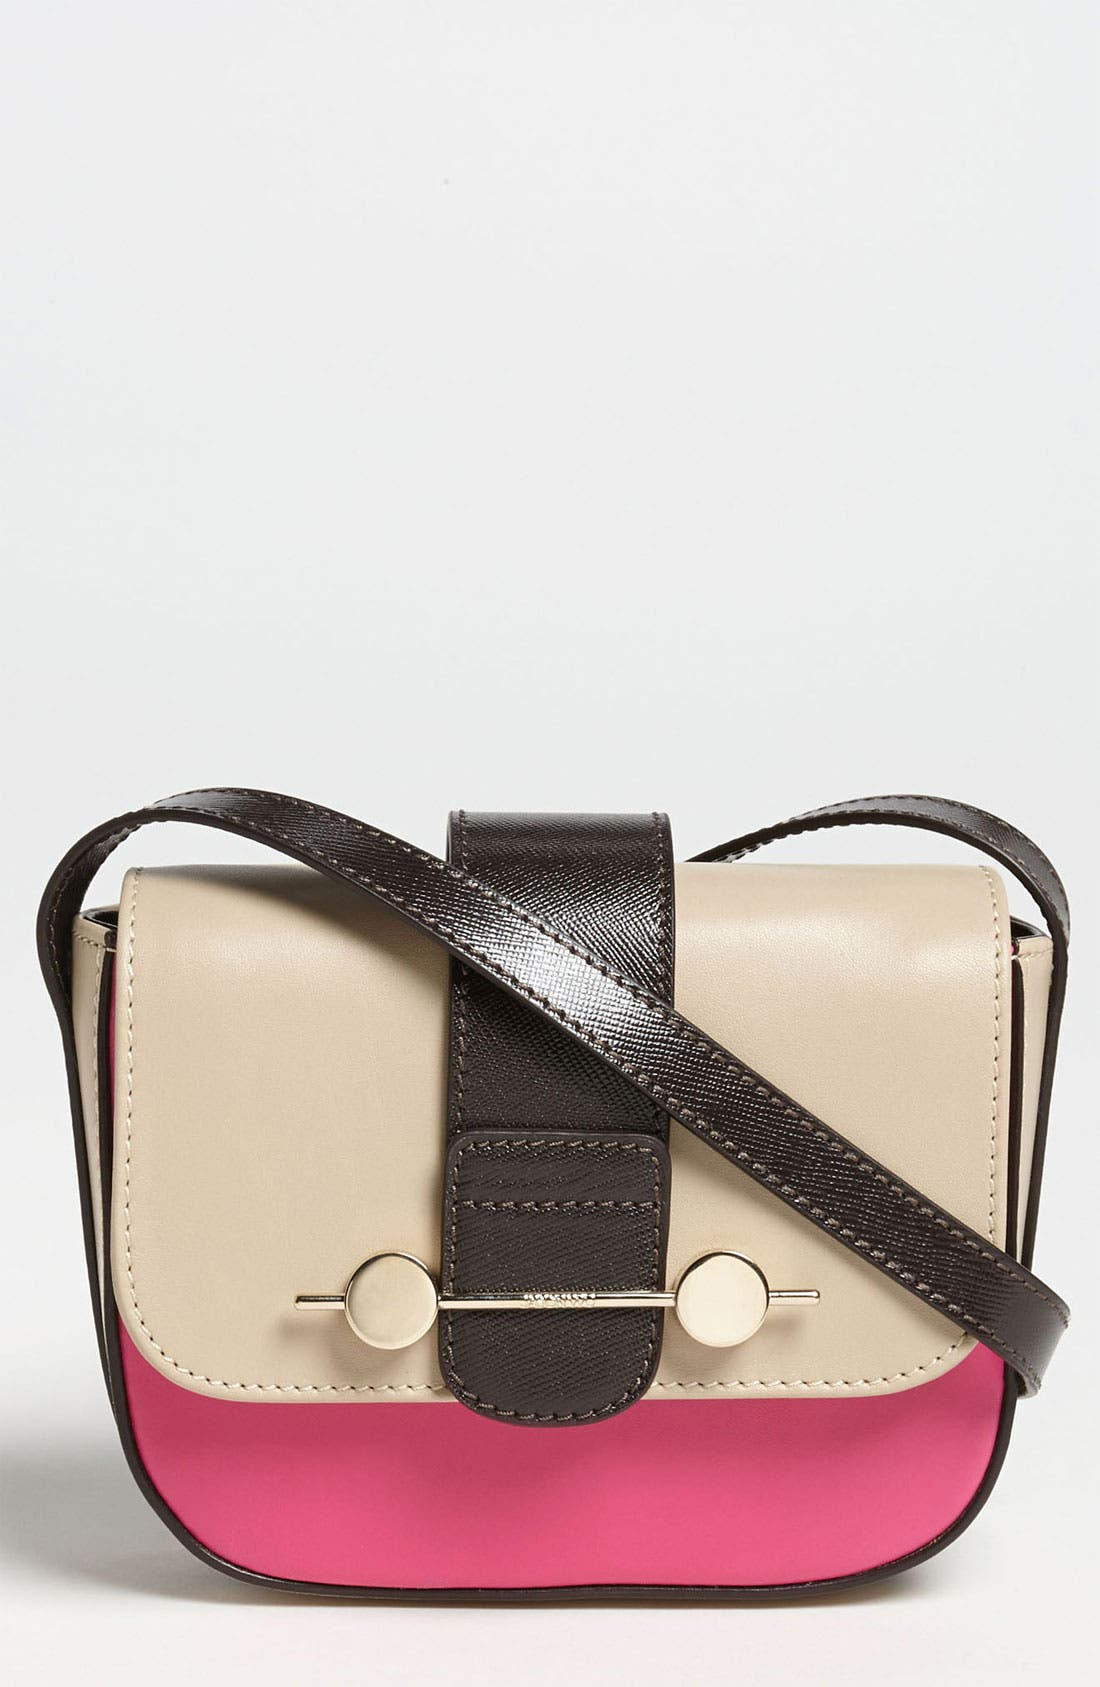 Main Image - Jason Wu 'Daphne - Mini' Crossbody Bag